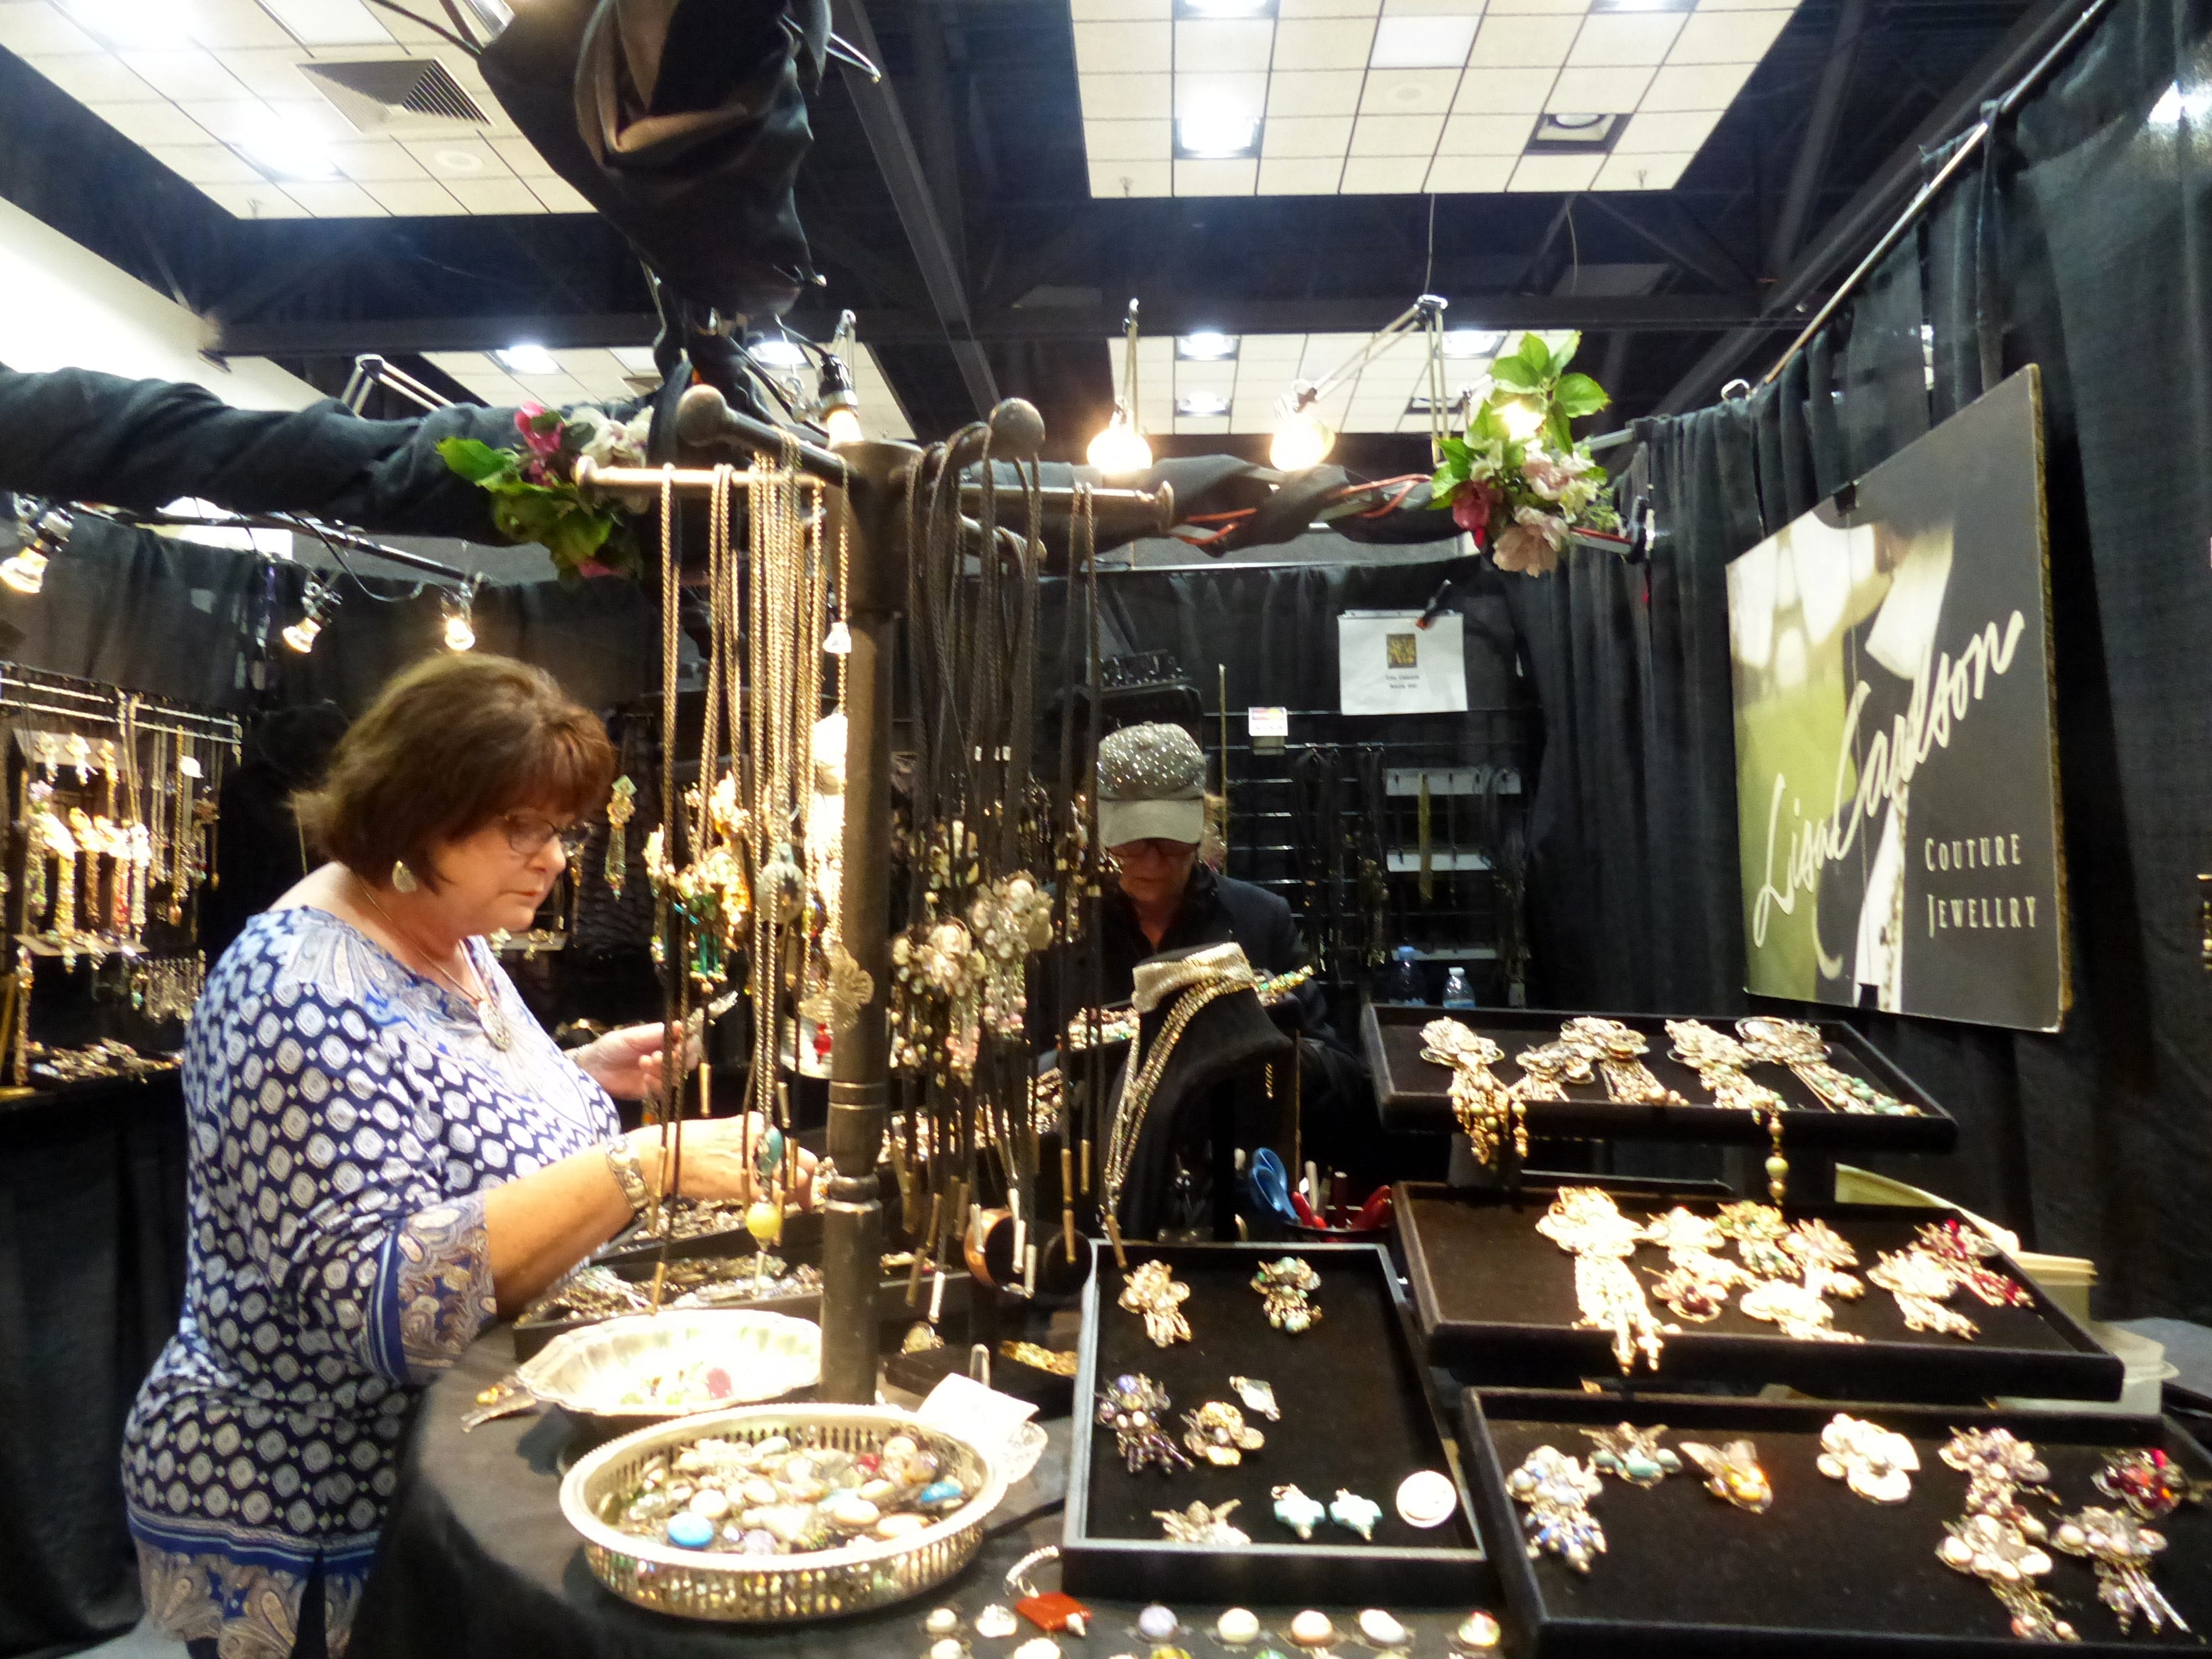 Jewelry was unusual and affordable.